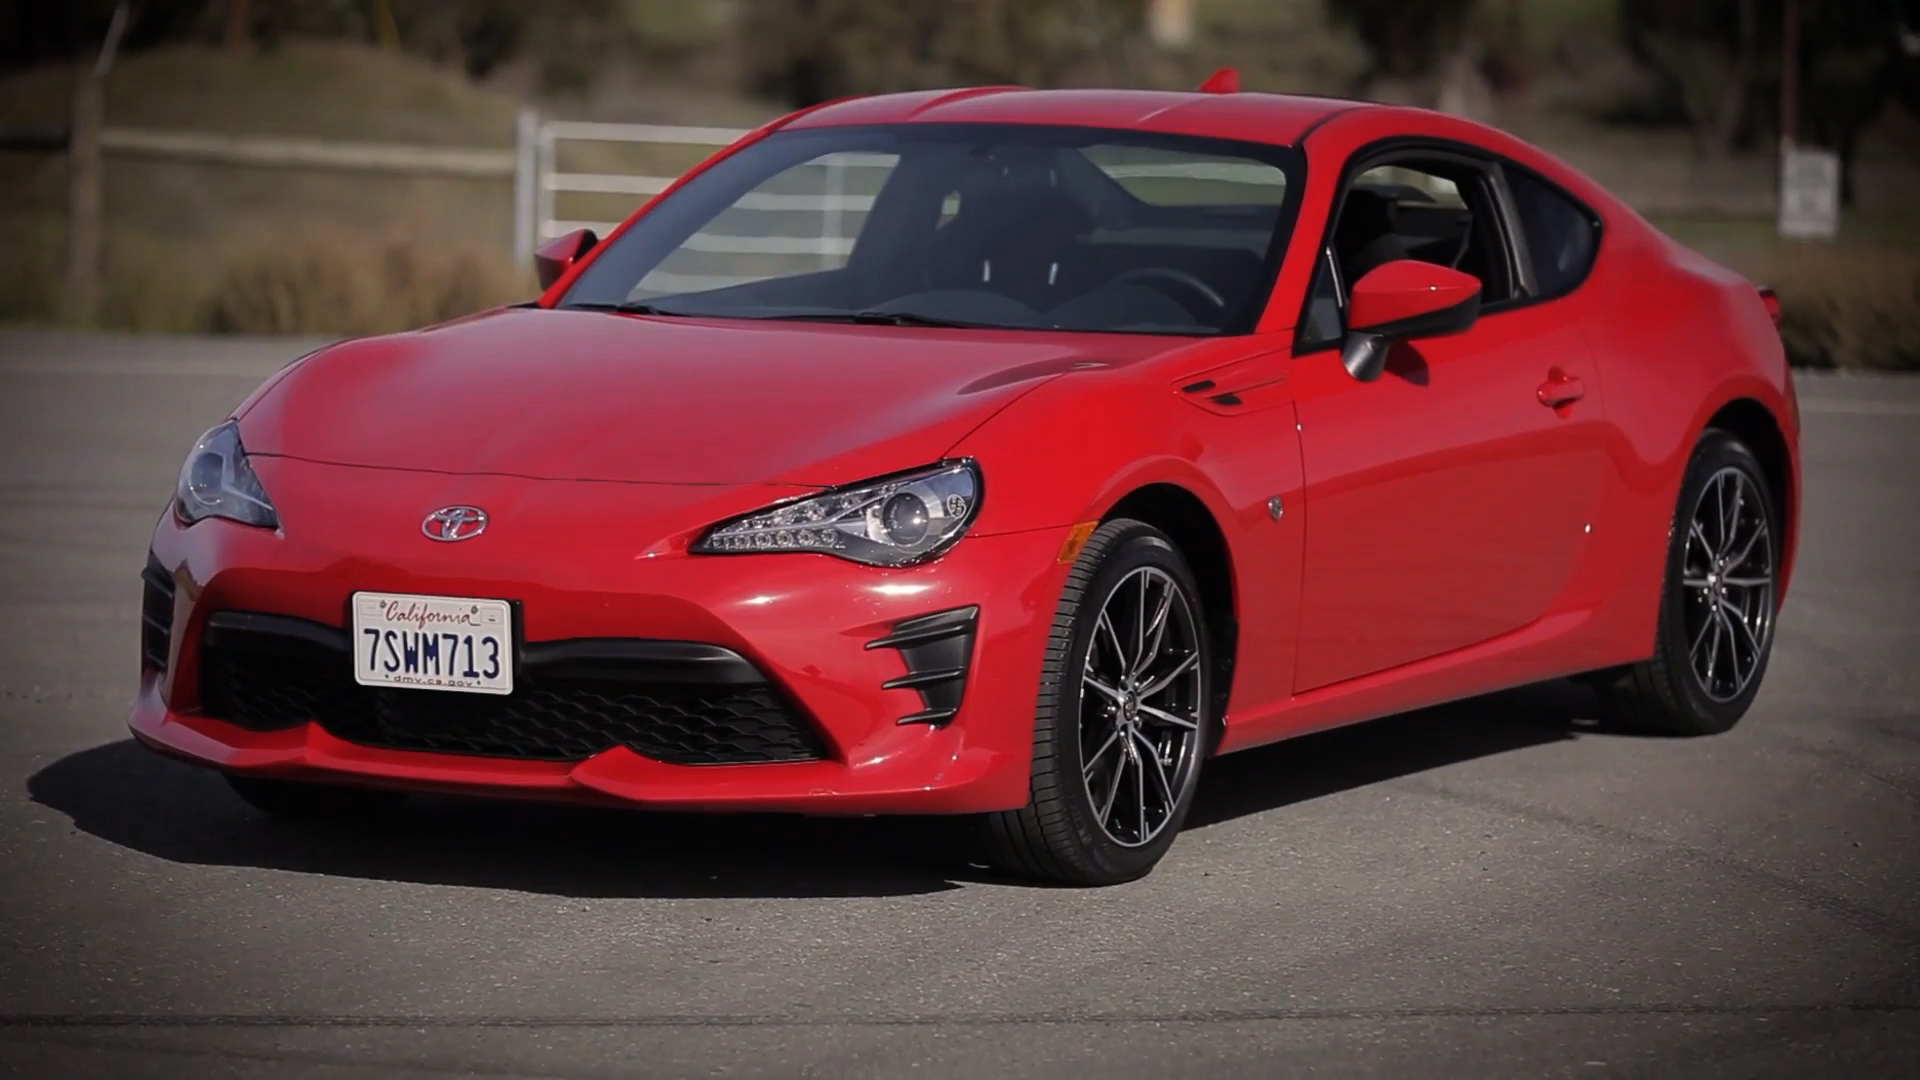 Video: On the road: 2017 Toyota 86